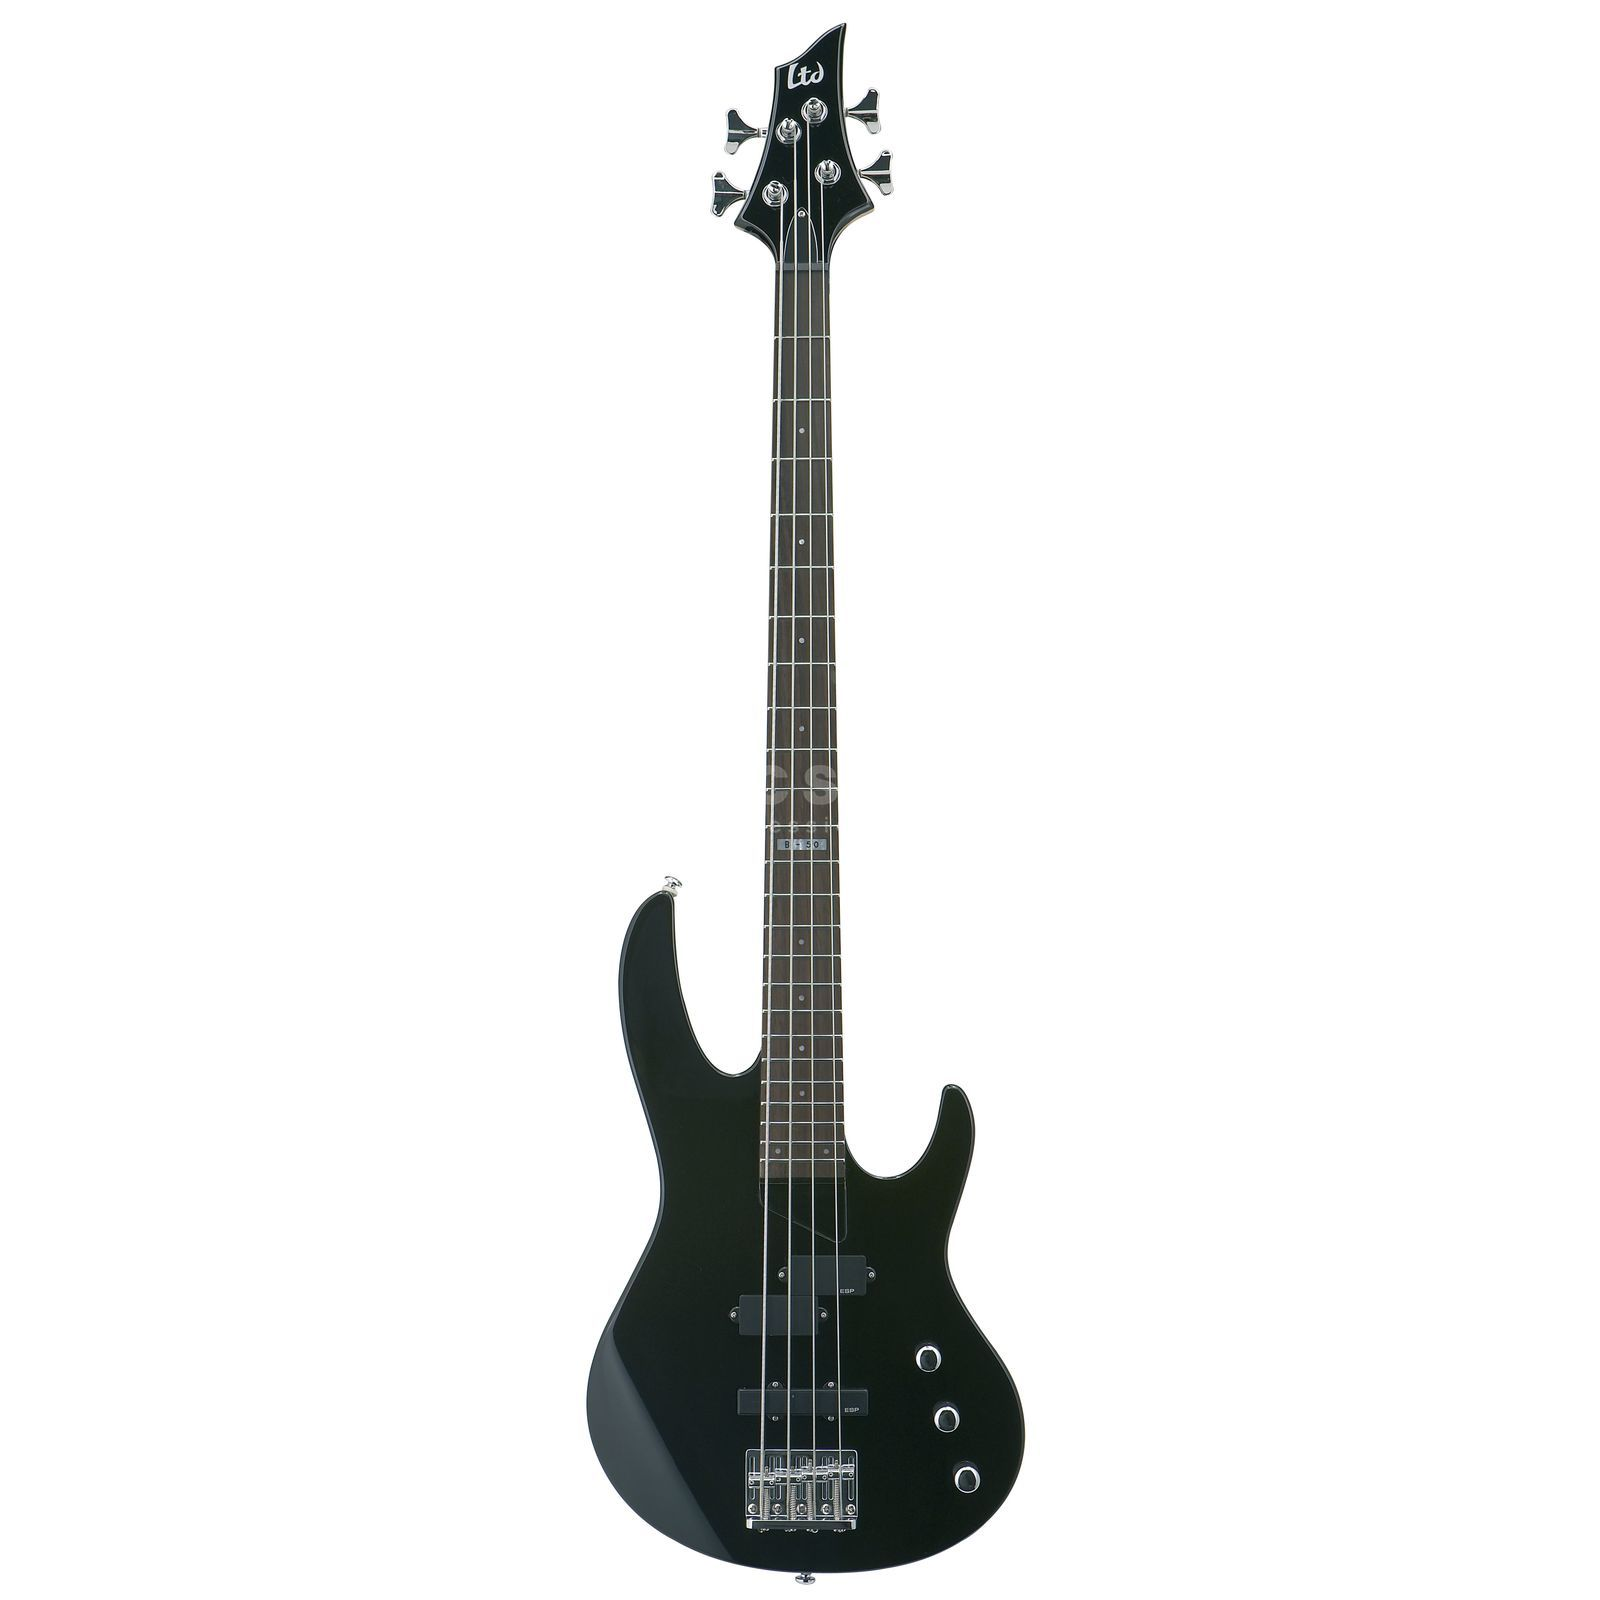 ESP LTD B-50 Bass Guitar, Black    Product Image